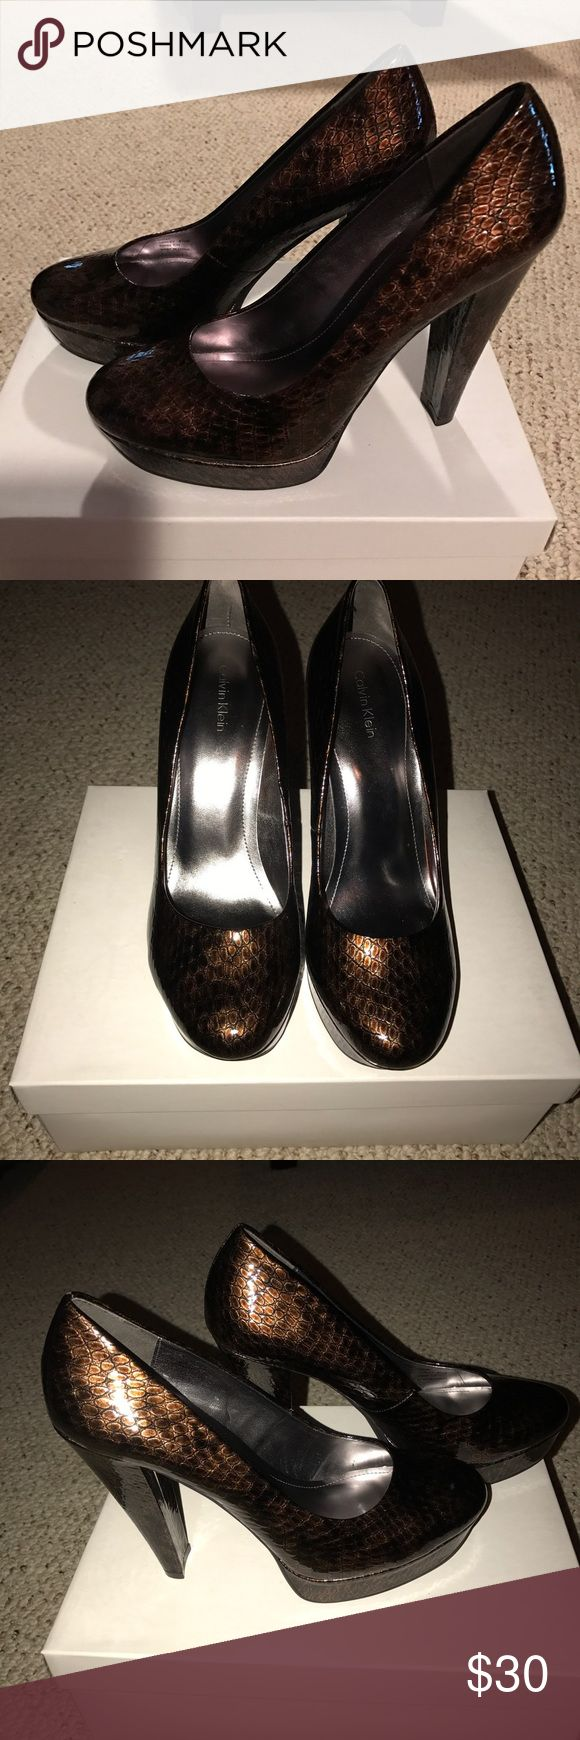 Size 8.5 Calvin Klein bronze shoes Size 8.5 Calvin Klein heels. Worn maybe twice but my feet grew to a 9 after my pregnancy. So cute, I wish they fit! Calvin Klein Shoes Heels